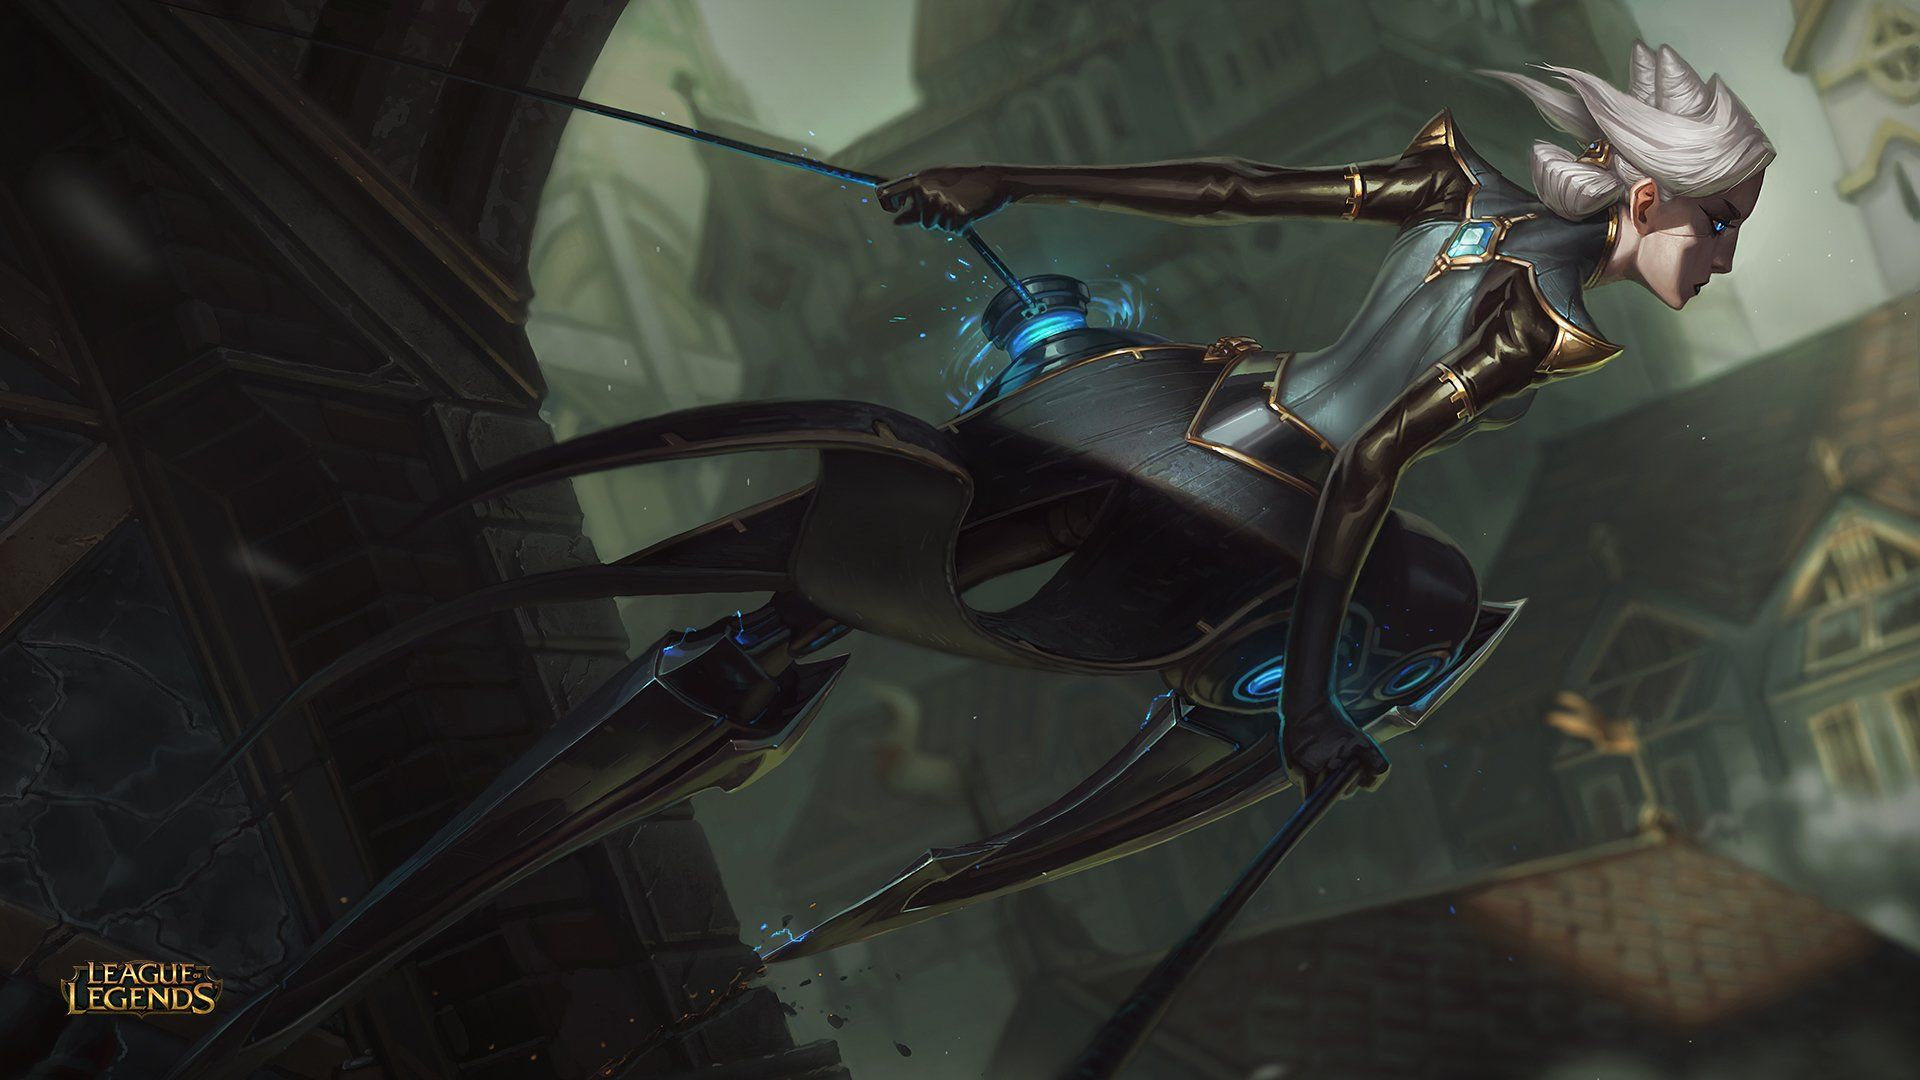 Best League Of Legends Top Lane Champions For Patch 10.22 To Climb Ranks In Solo Queue